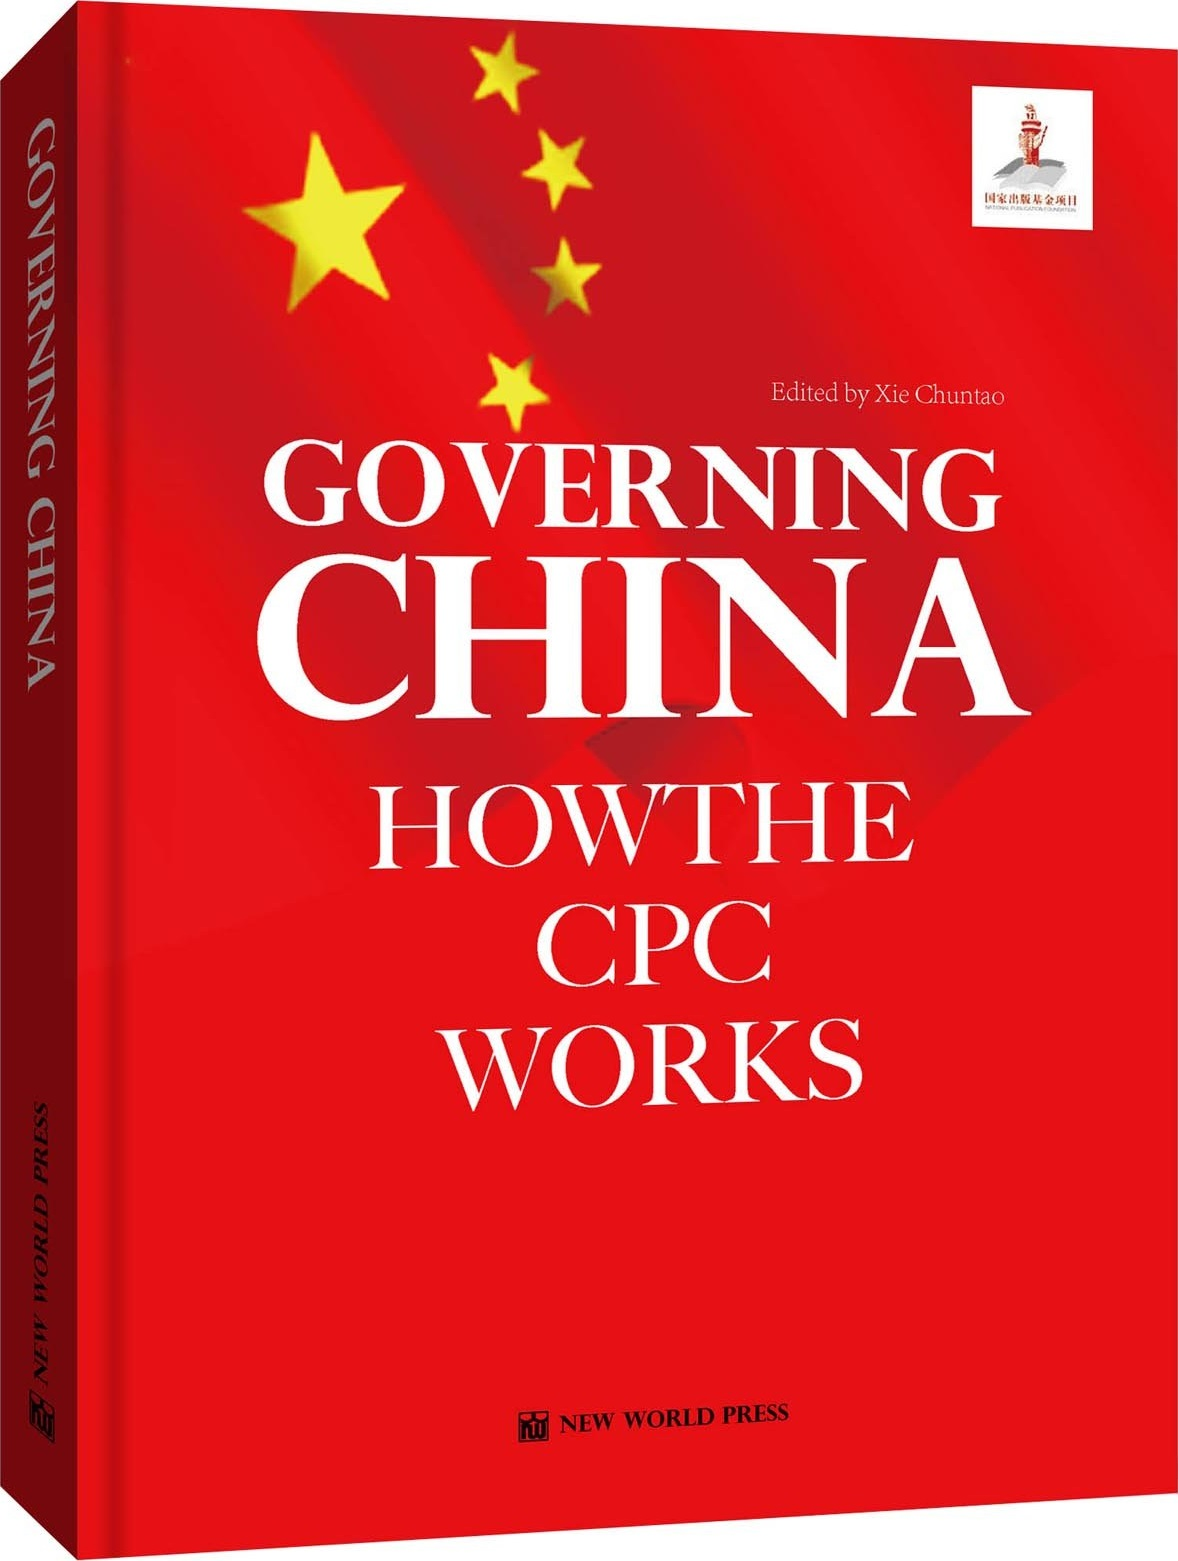 Governing China - How the CPC Works